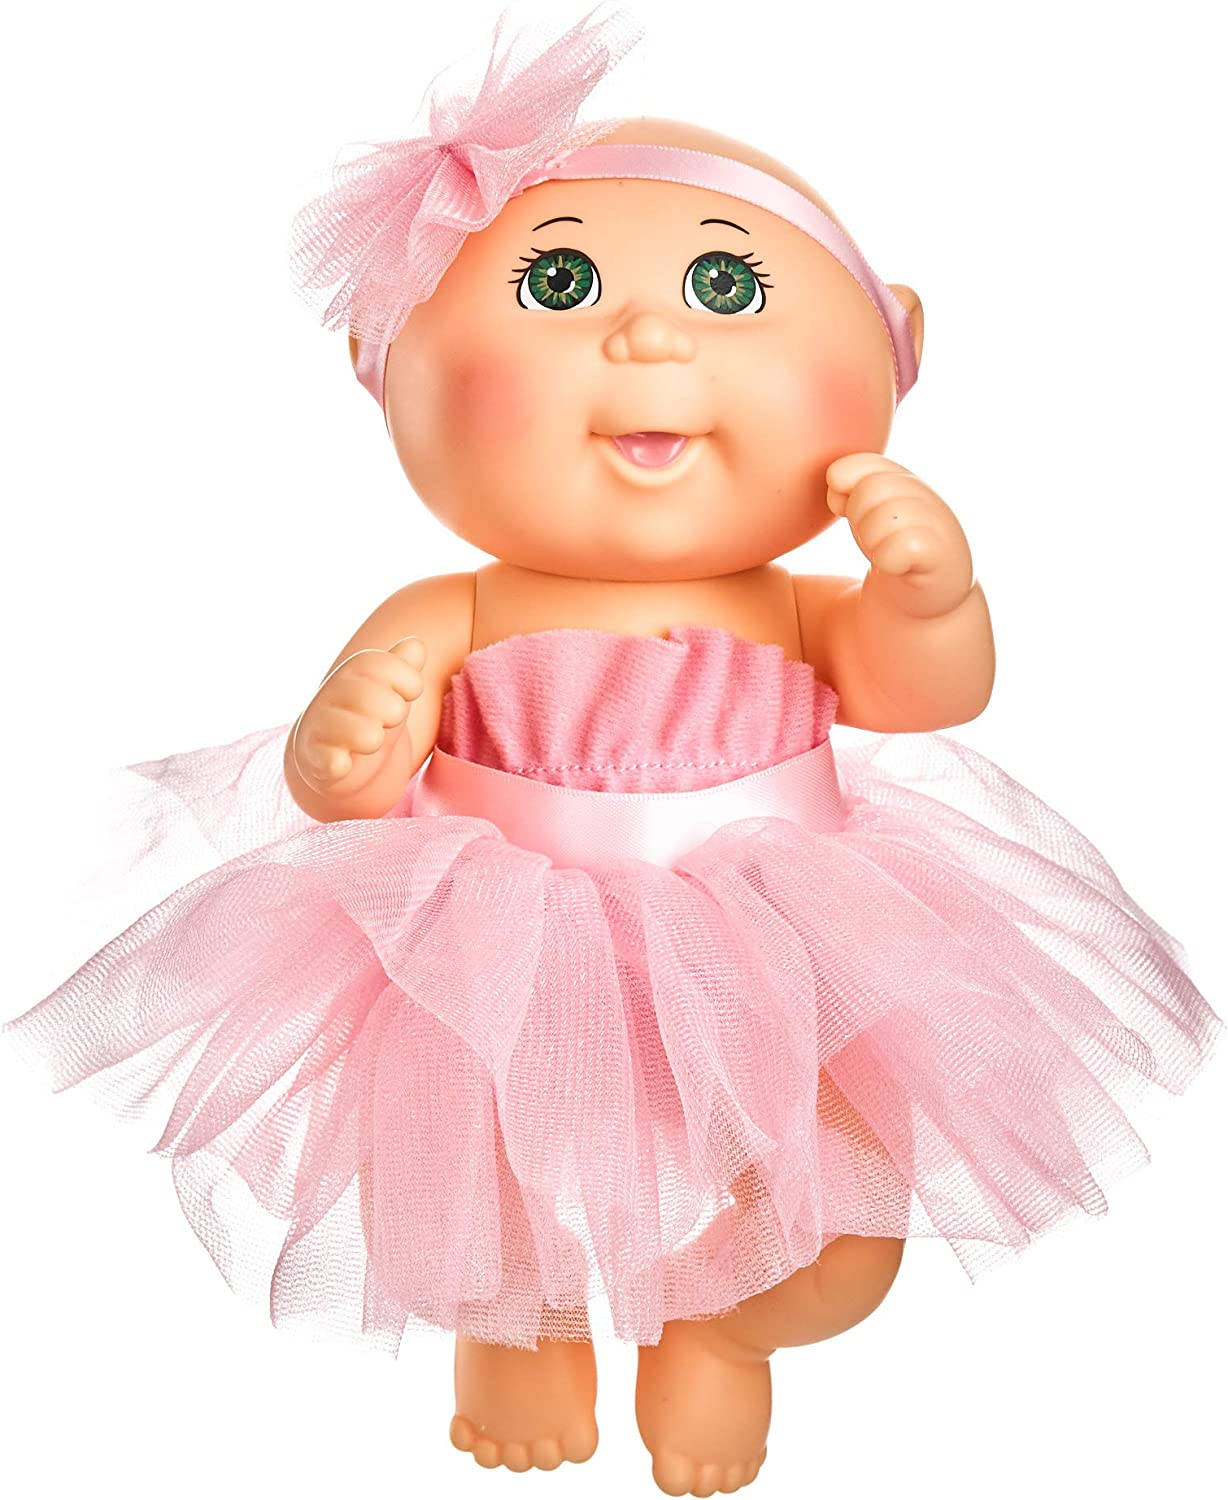 Cabbage Patch Kids 9 Inch Dance Time Girl, Green Eyes, Pink Tutu